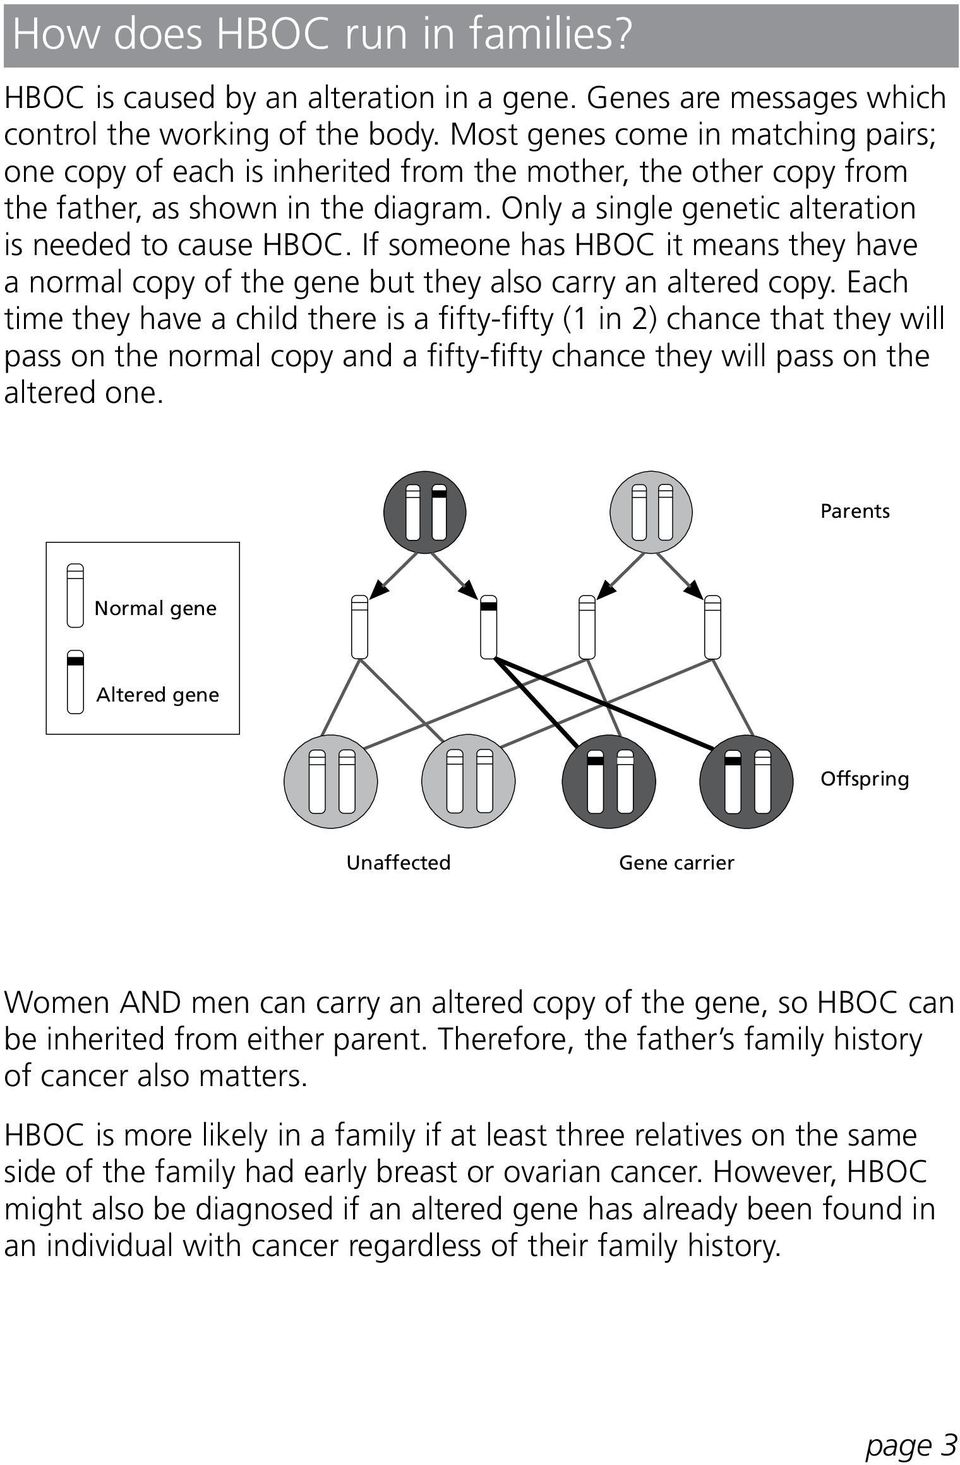 If someone has HBOC it means they have a normal copy of the gene but they also carry an altered copy.